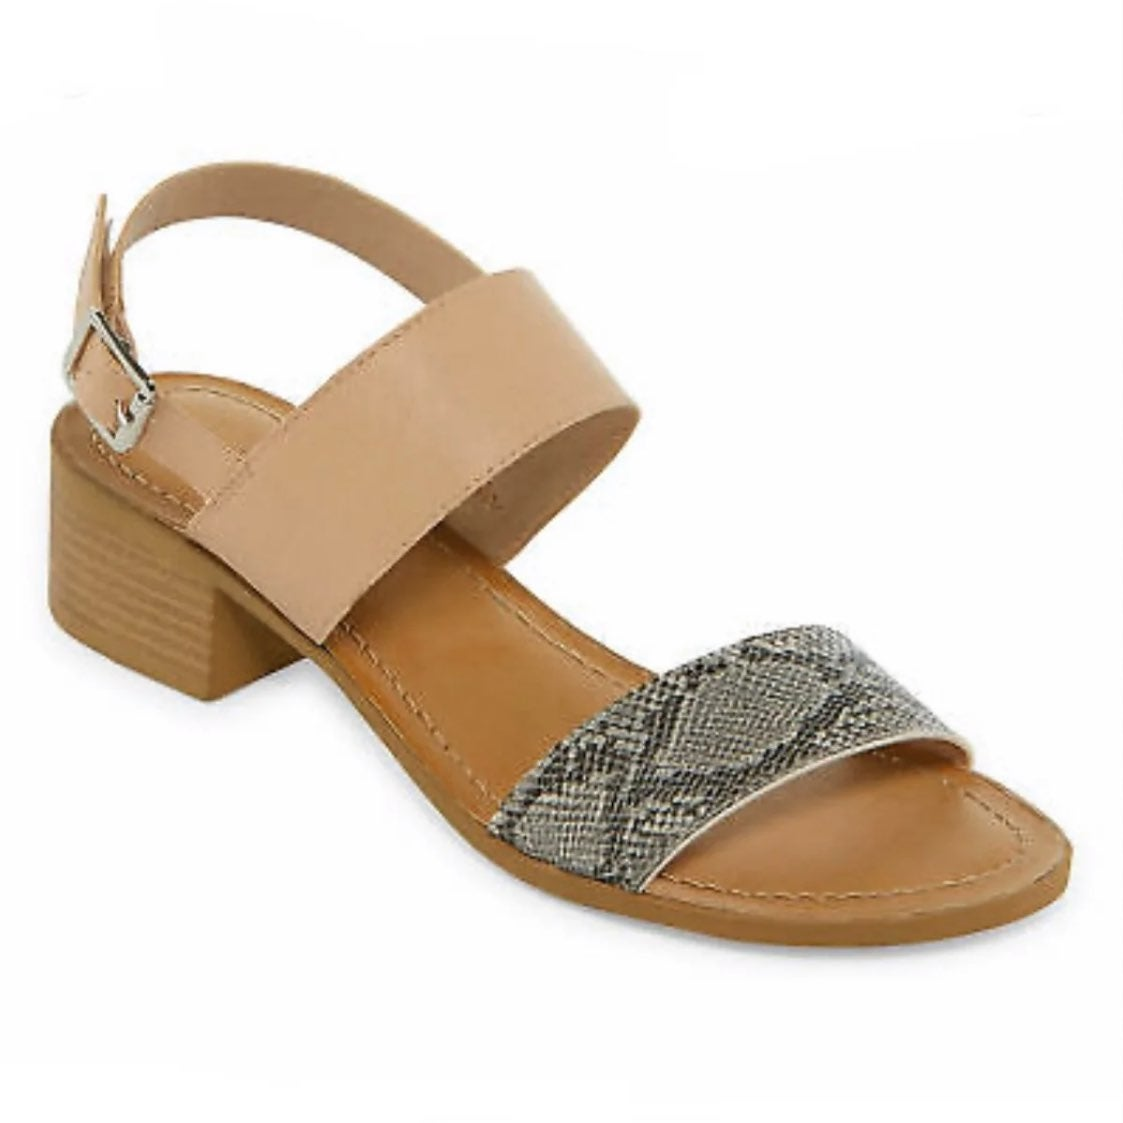 New womans a.n.a. Nude/snake sandals